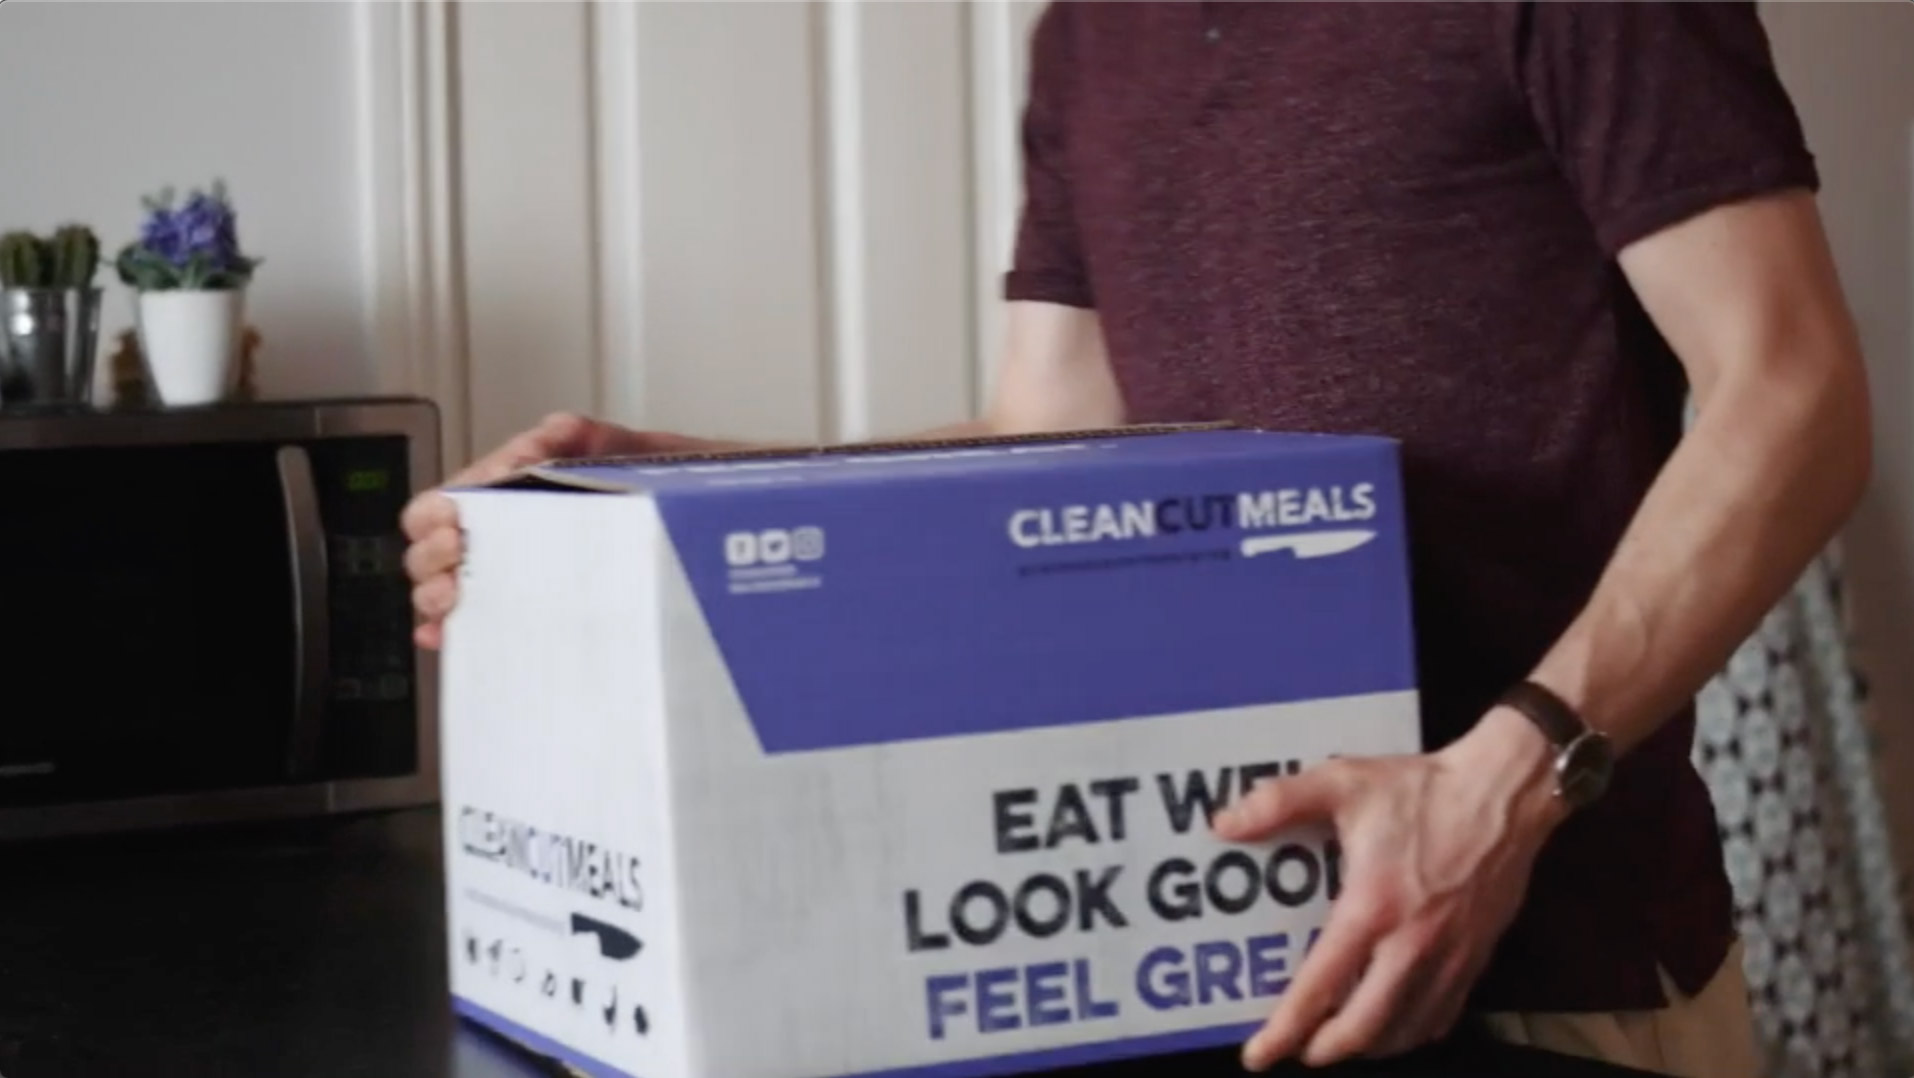 Customer receiving an order from clean cut meals